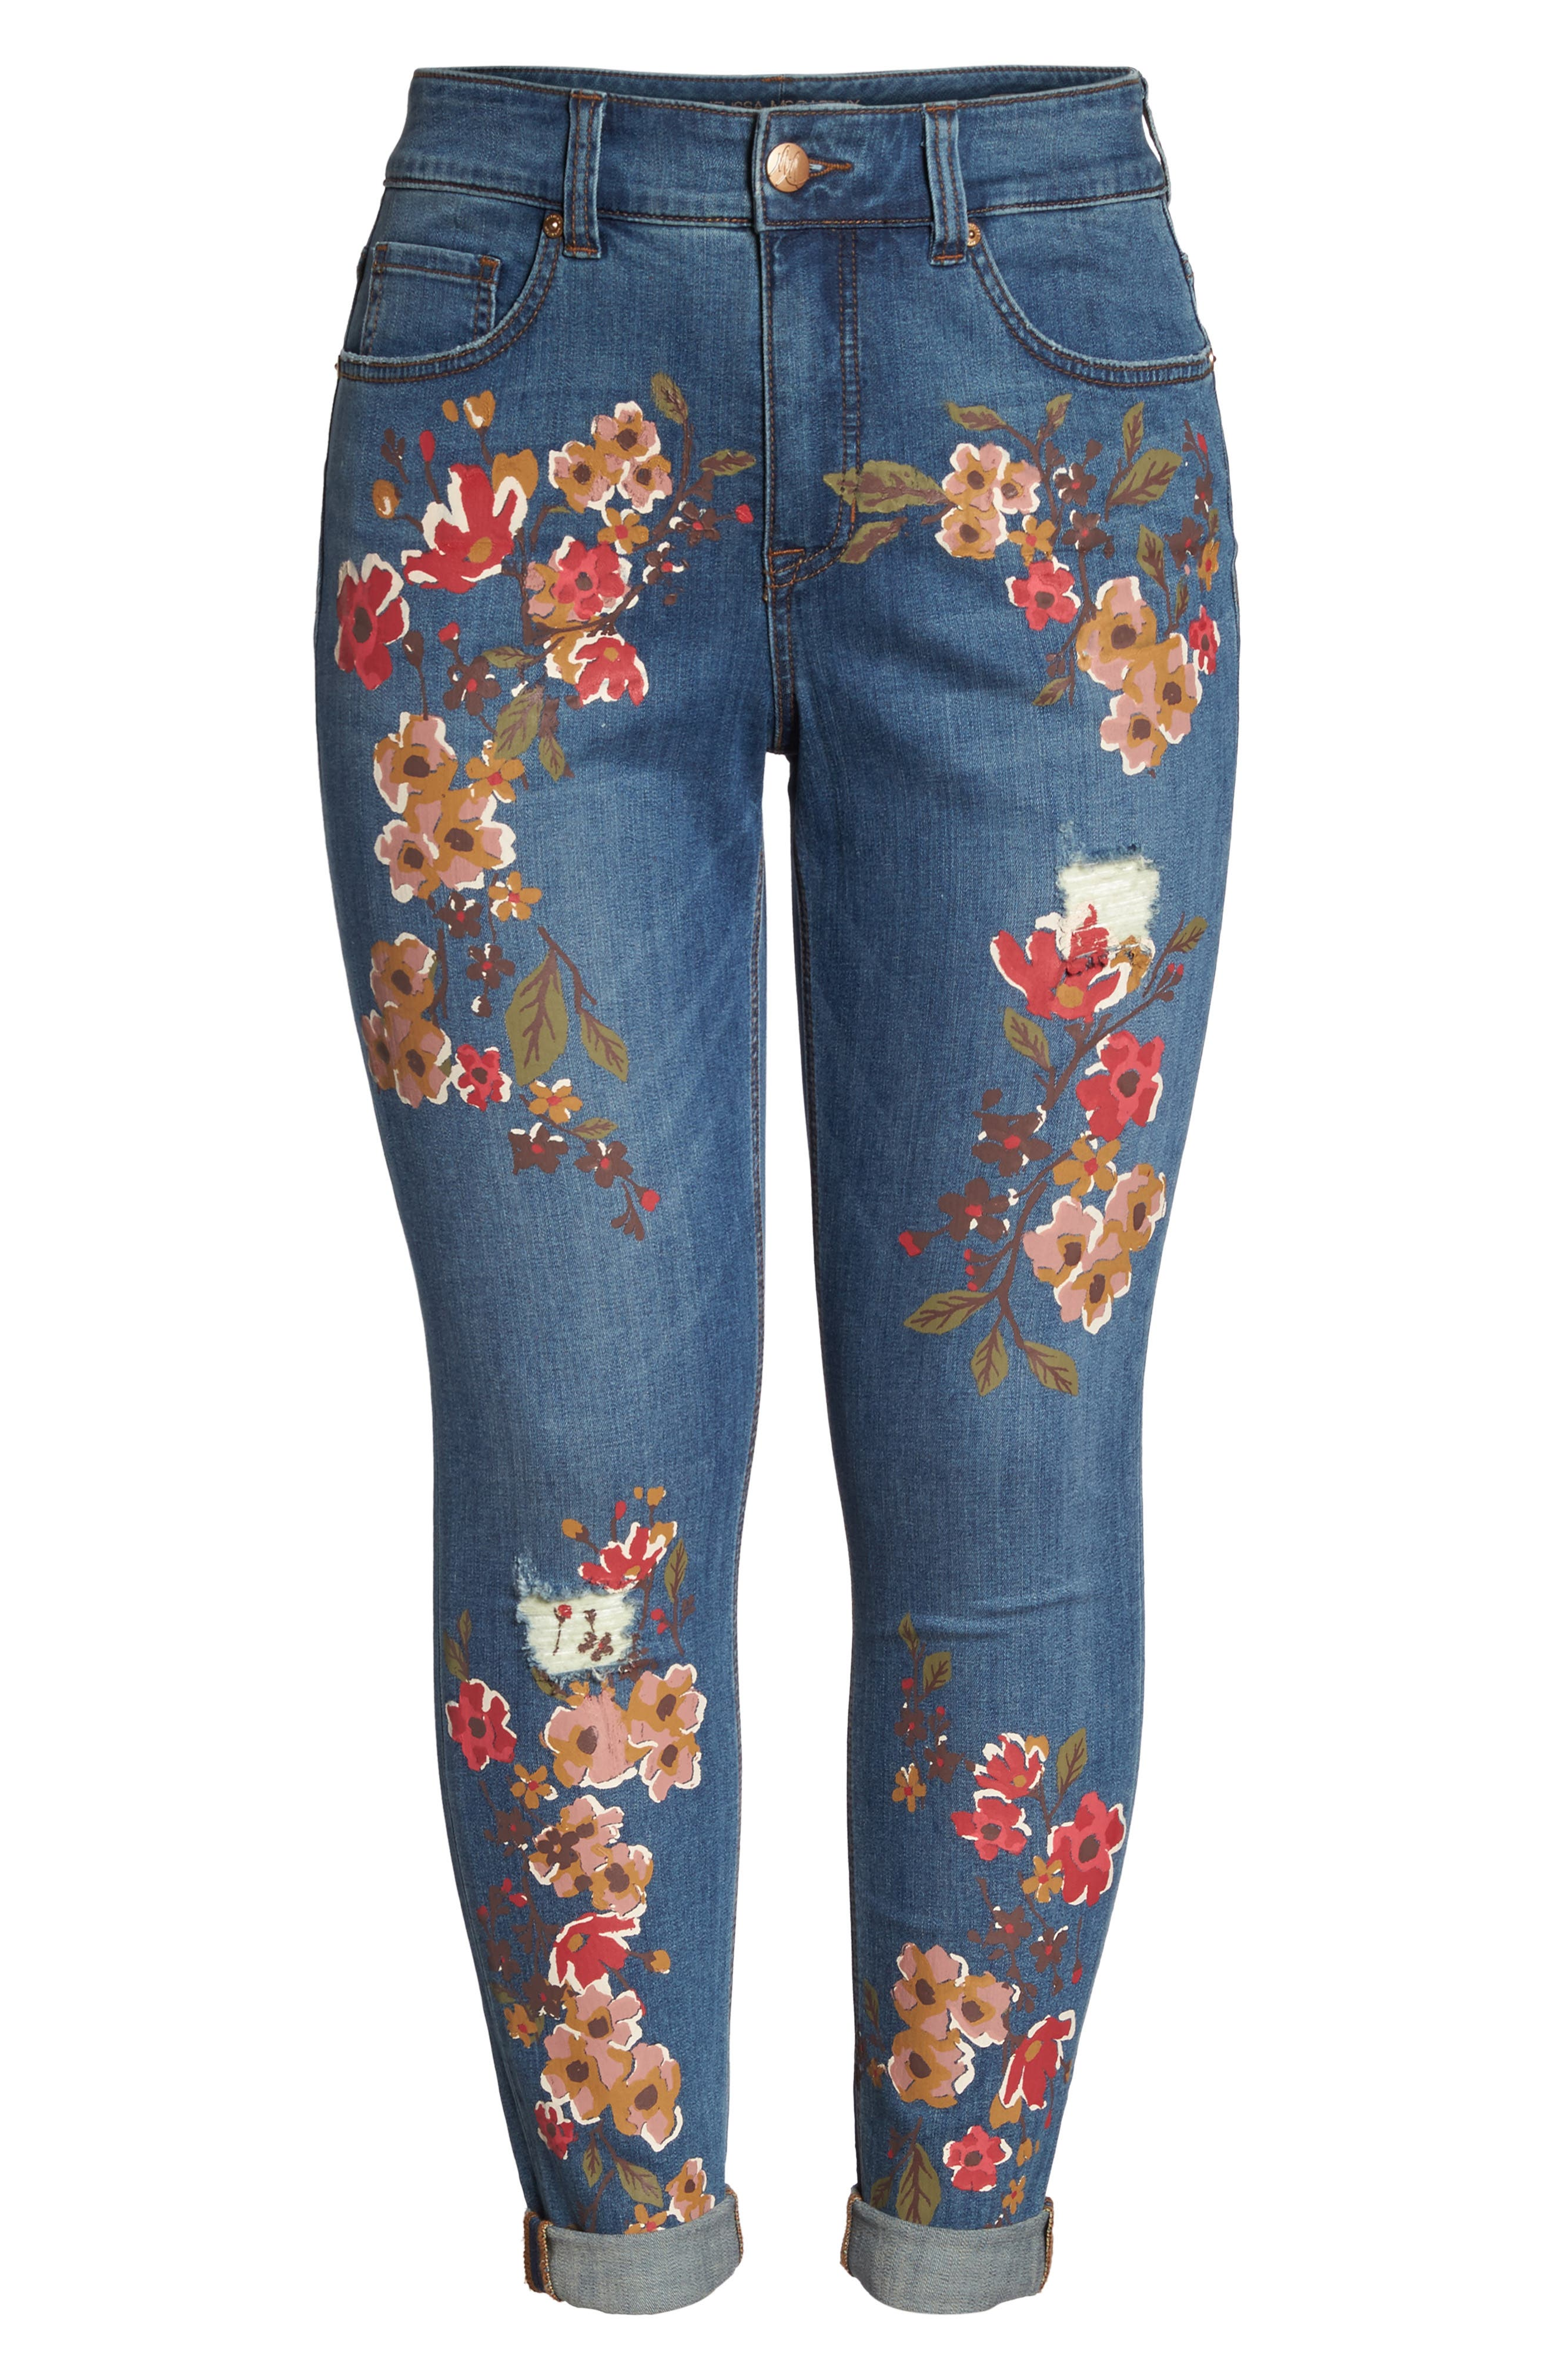 Painted Flowers Skinny Jeans,                             Alternate thumbnail 6, color,                             433